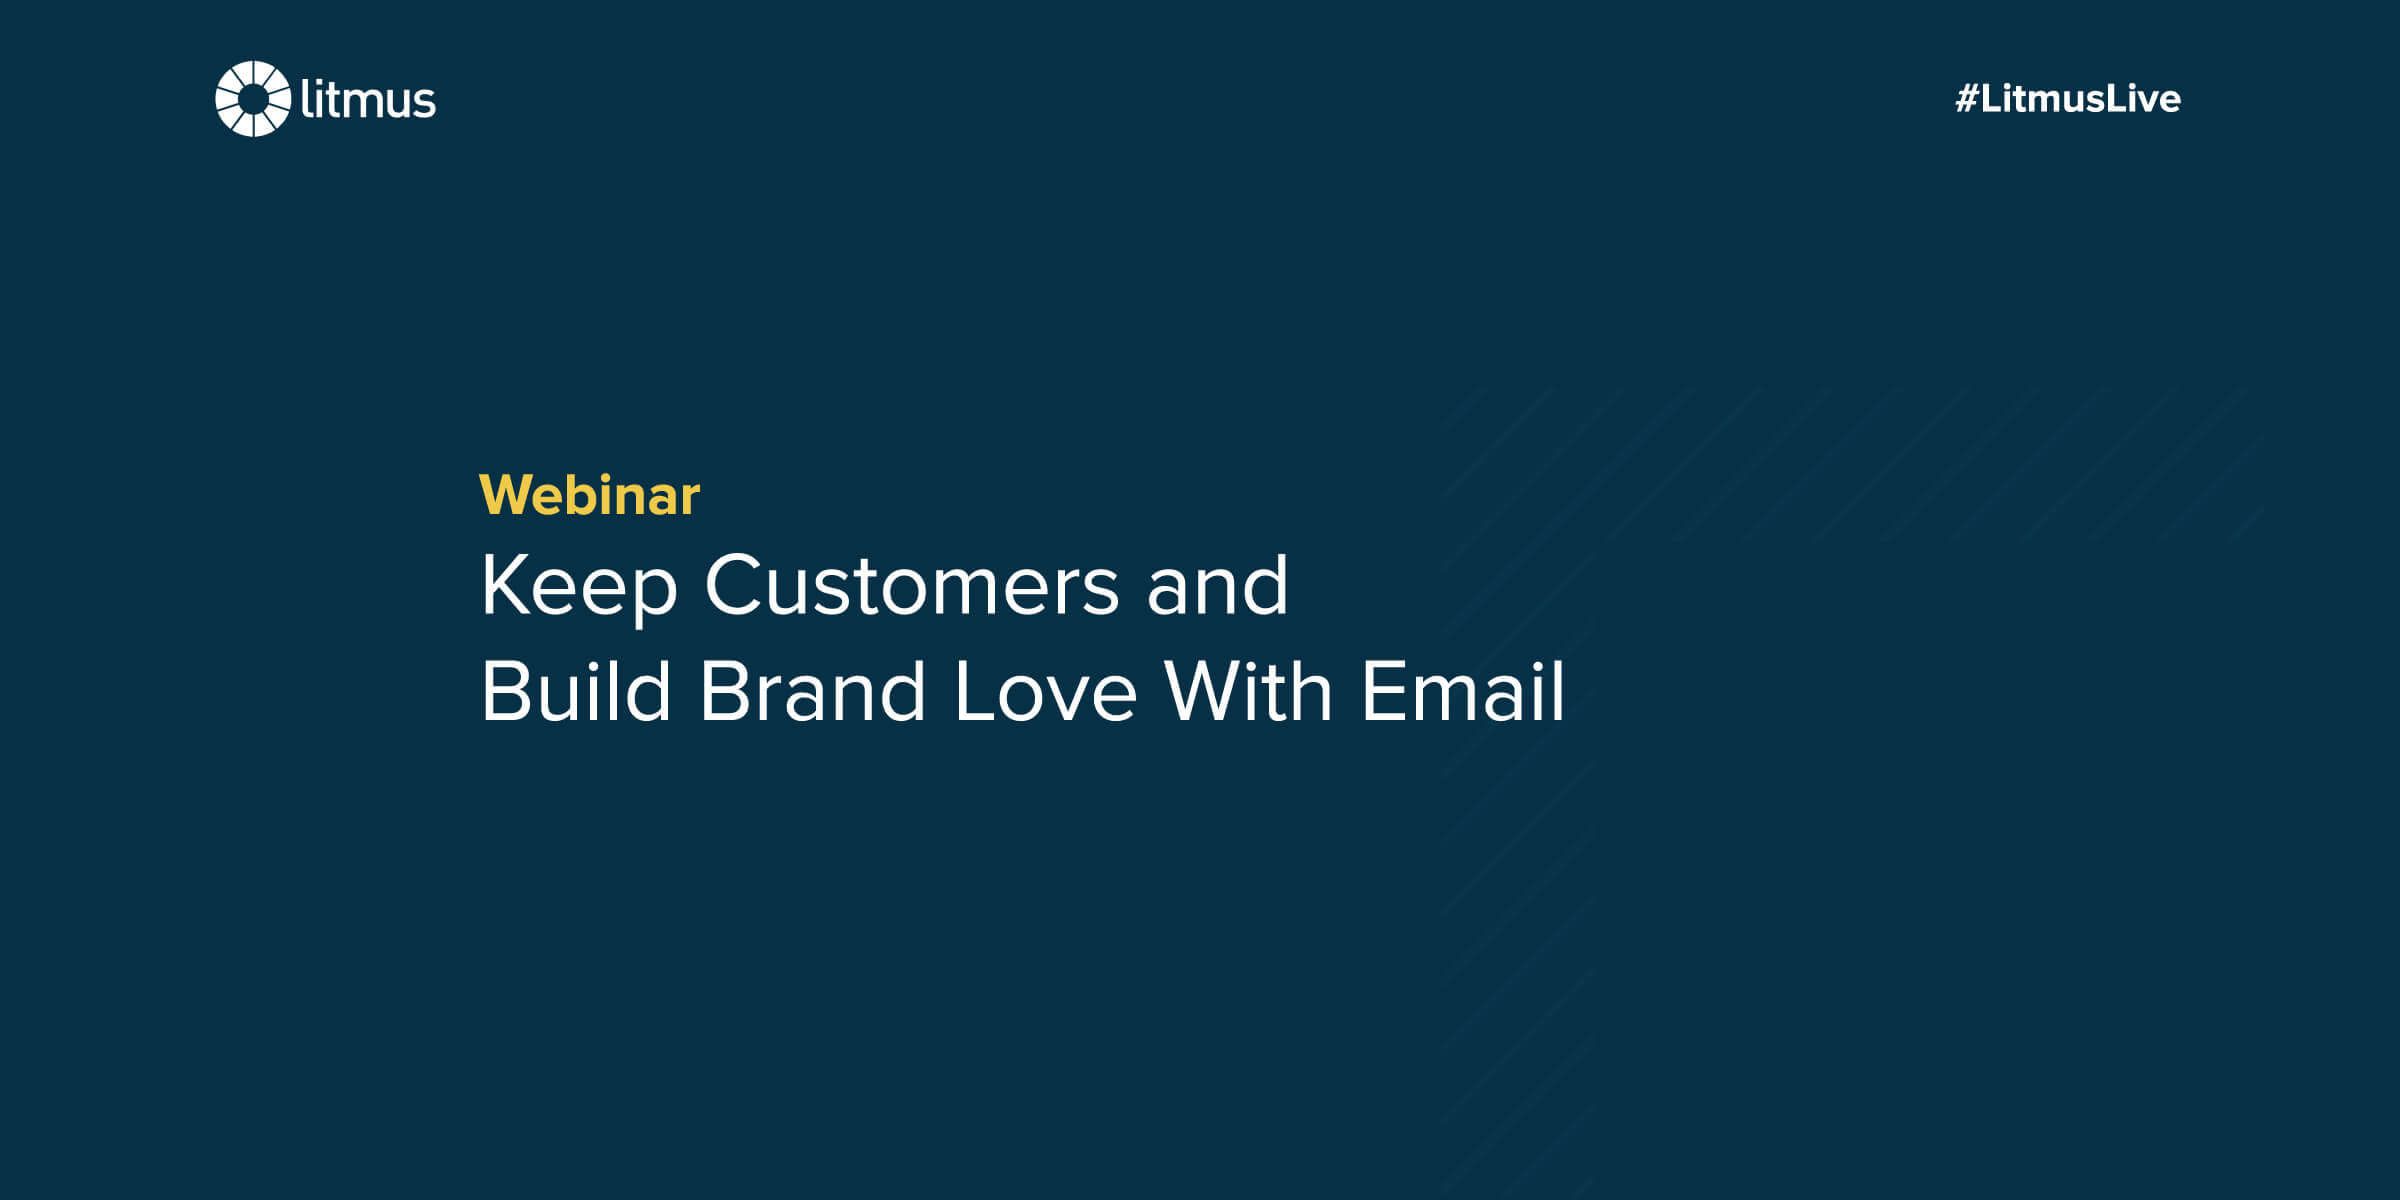 webinar-keep-customers-and-build-brand-love-with-email